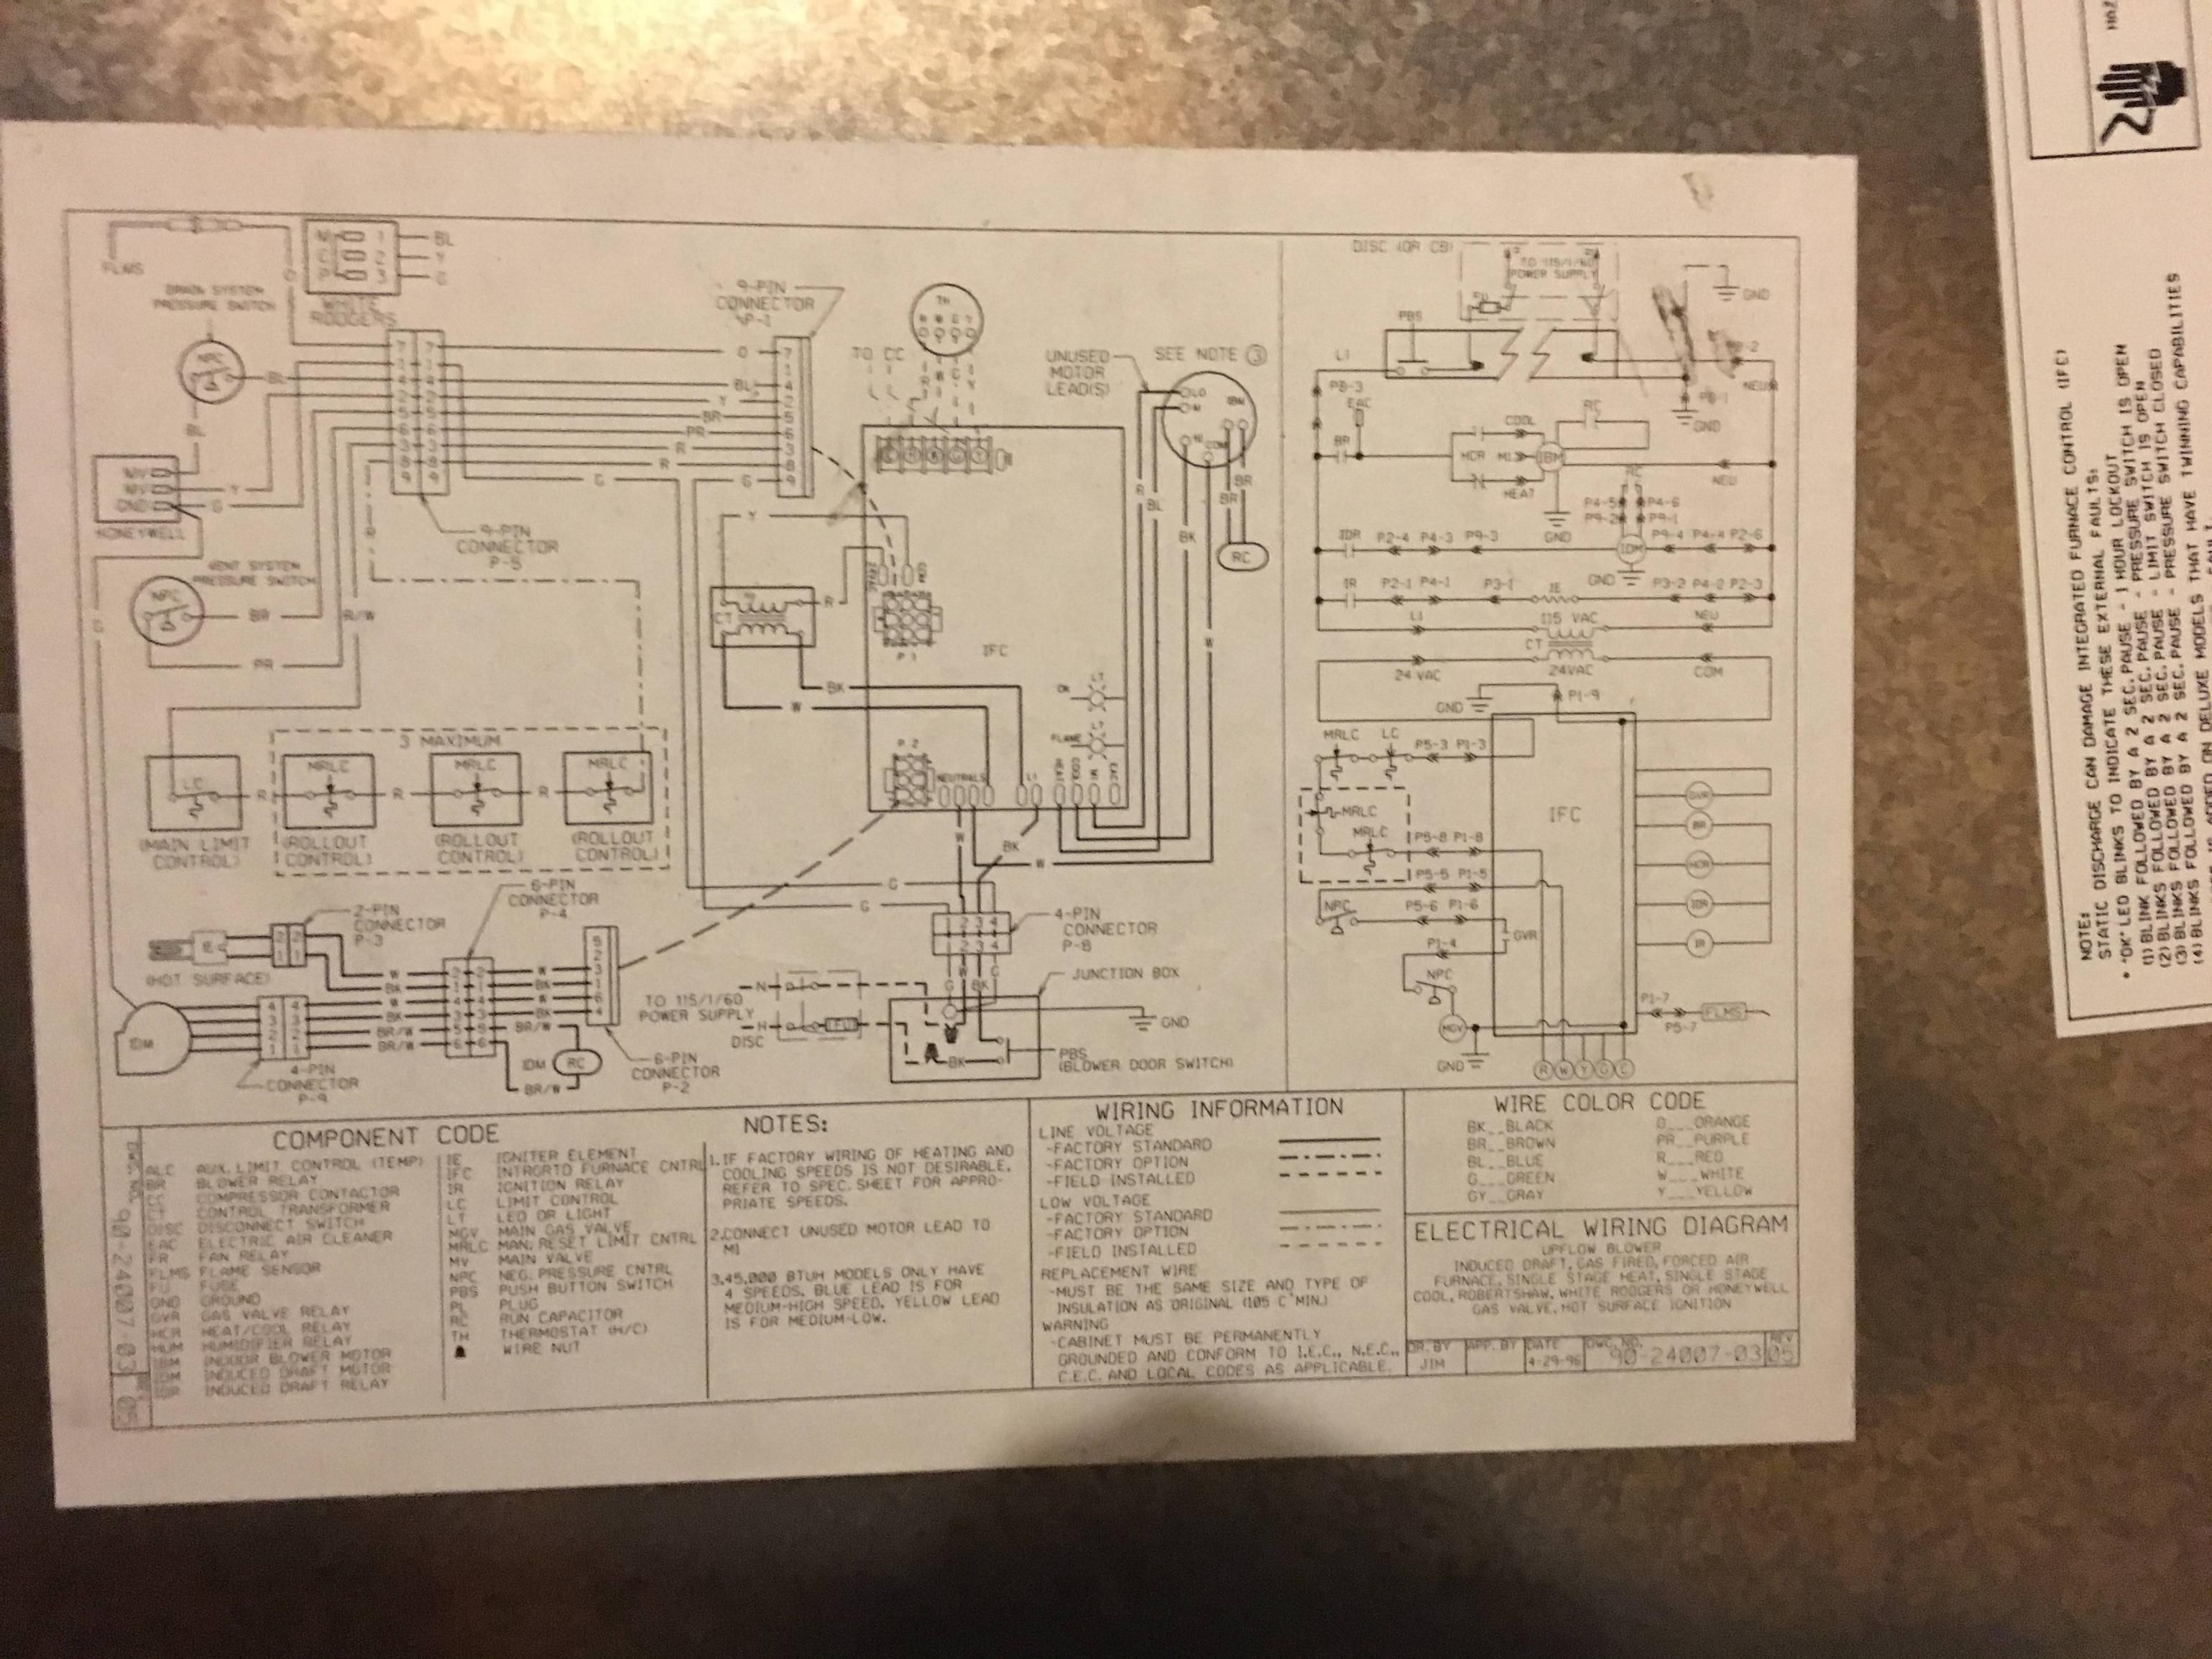 hight resolution of first company air handler wiring diagram question about wiring rh shirogadget com goodman air handler wiring diagrams trane air handler wiring diagrams